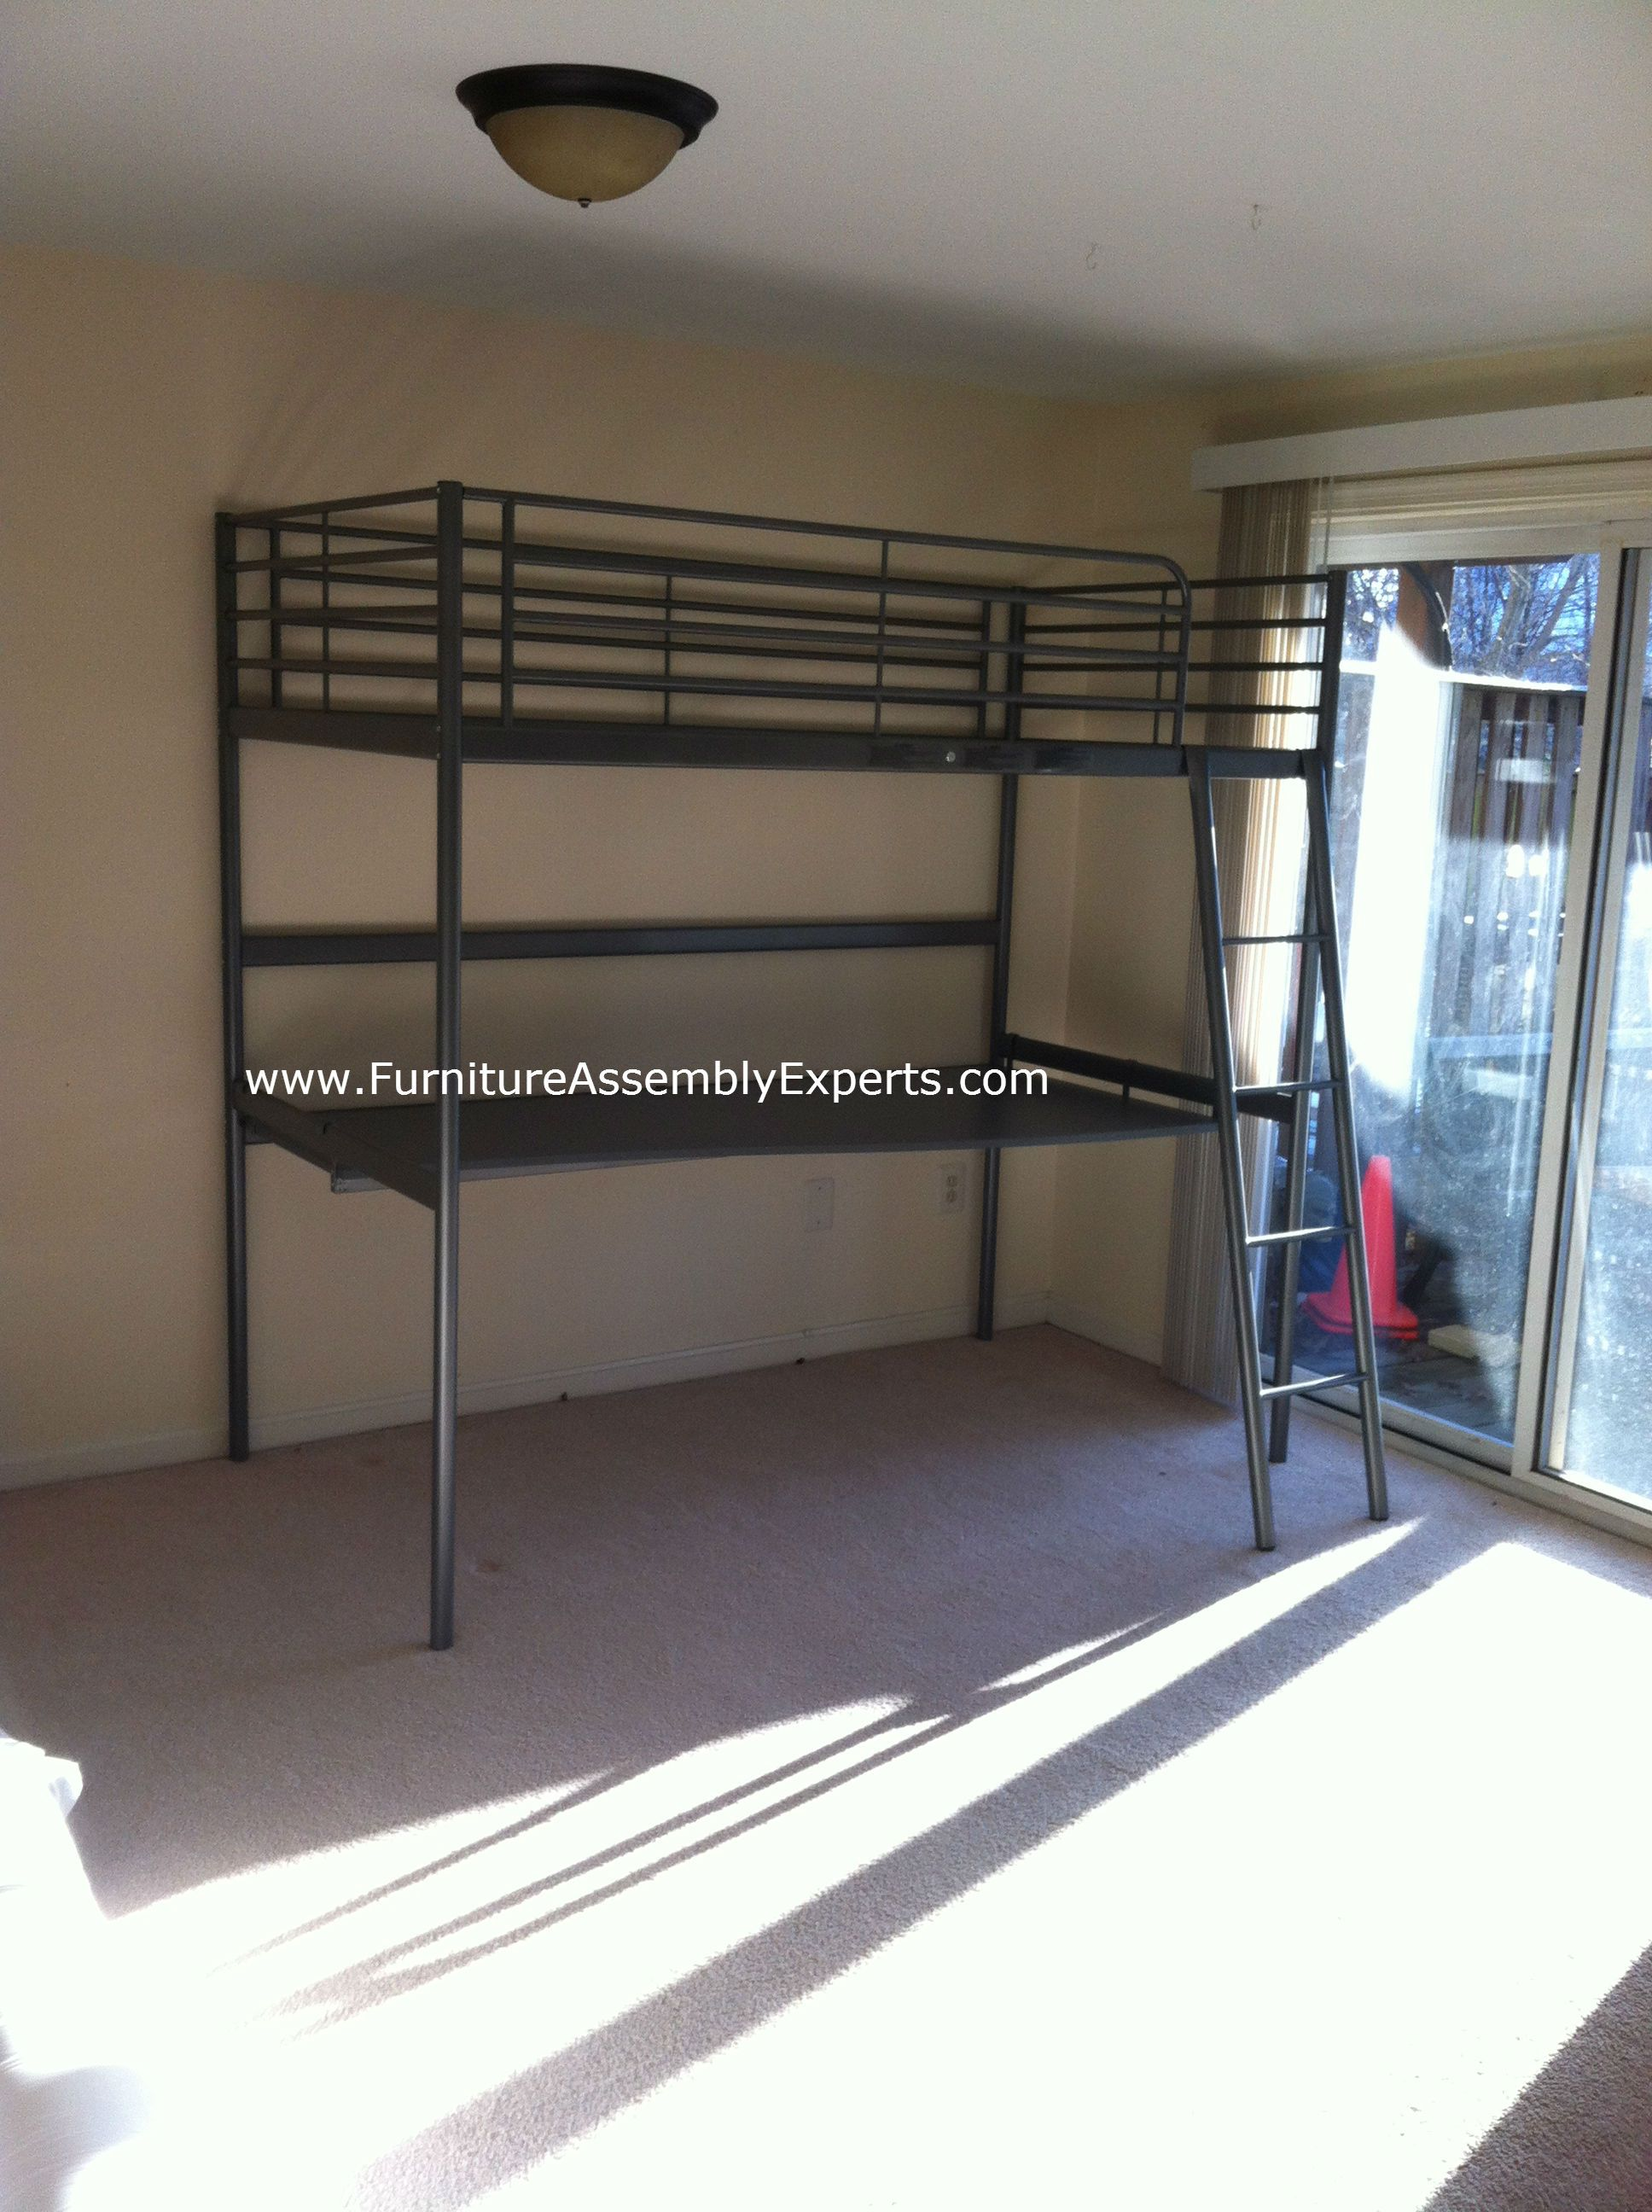 ikea loft bed assembled in delaware by Furniture assembly experts LLC